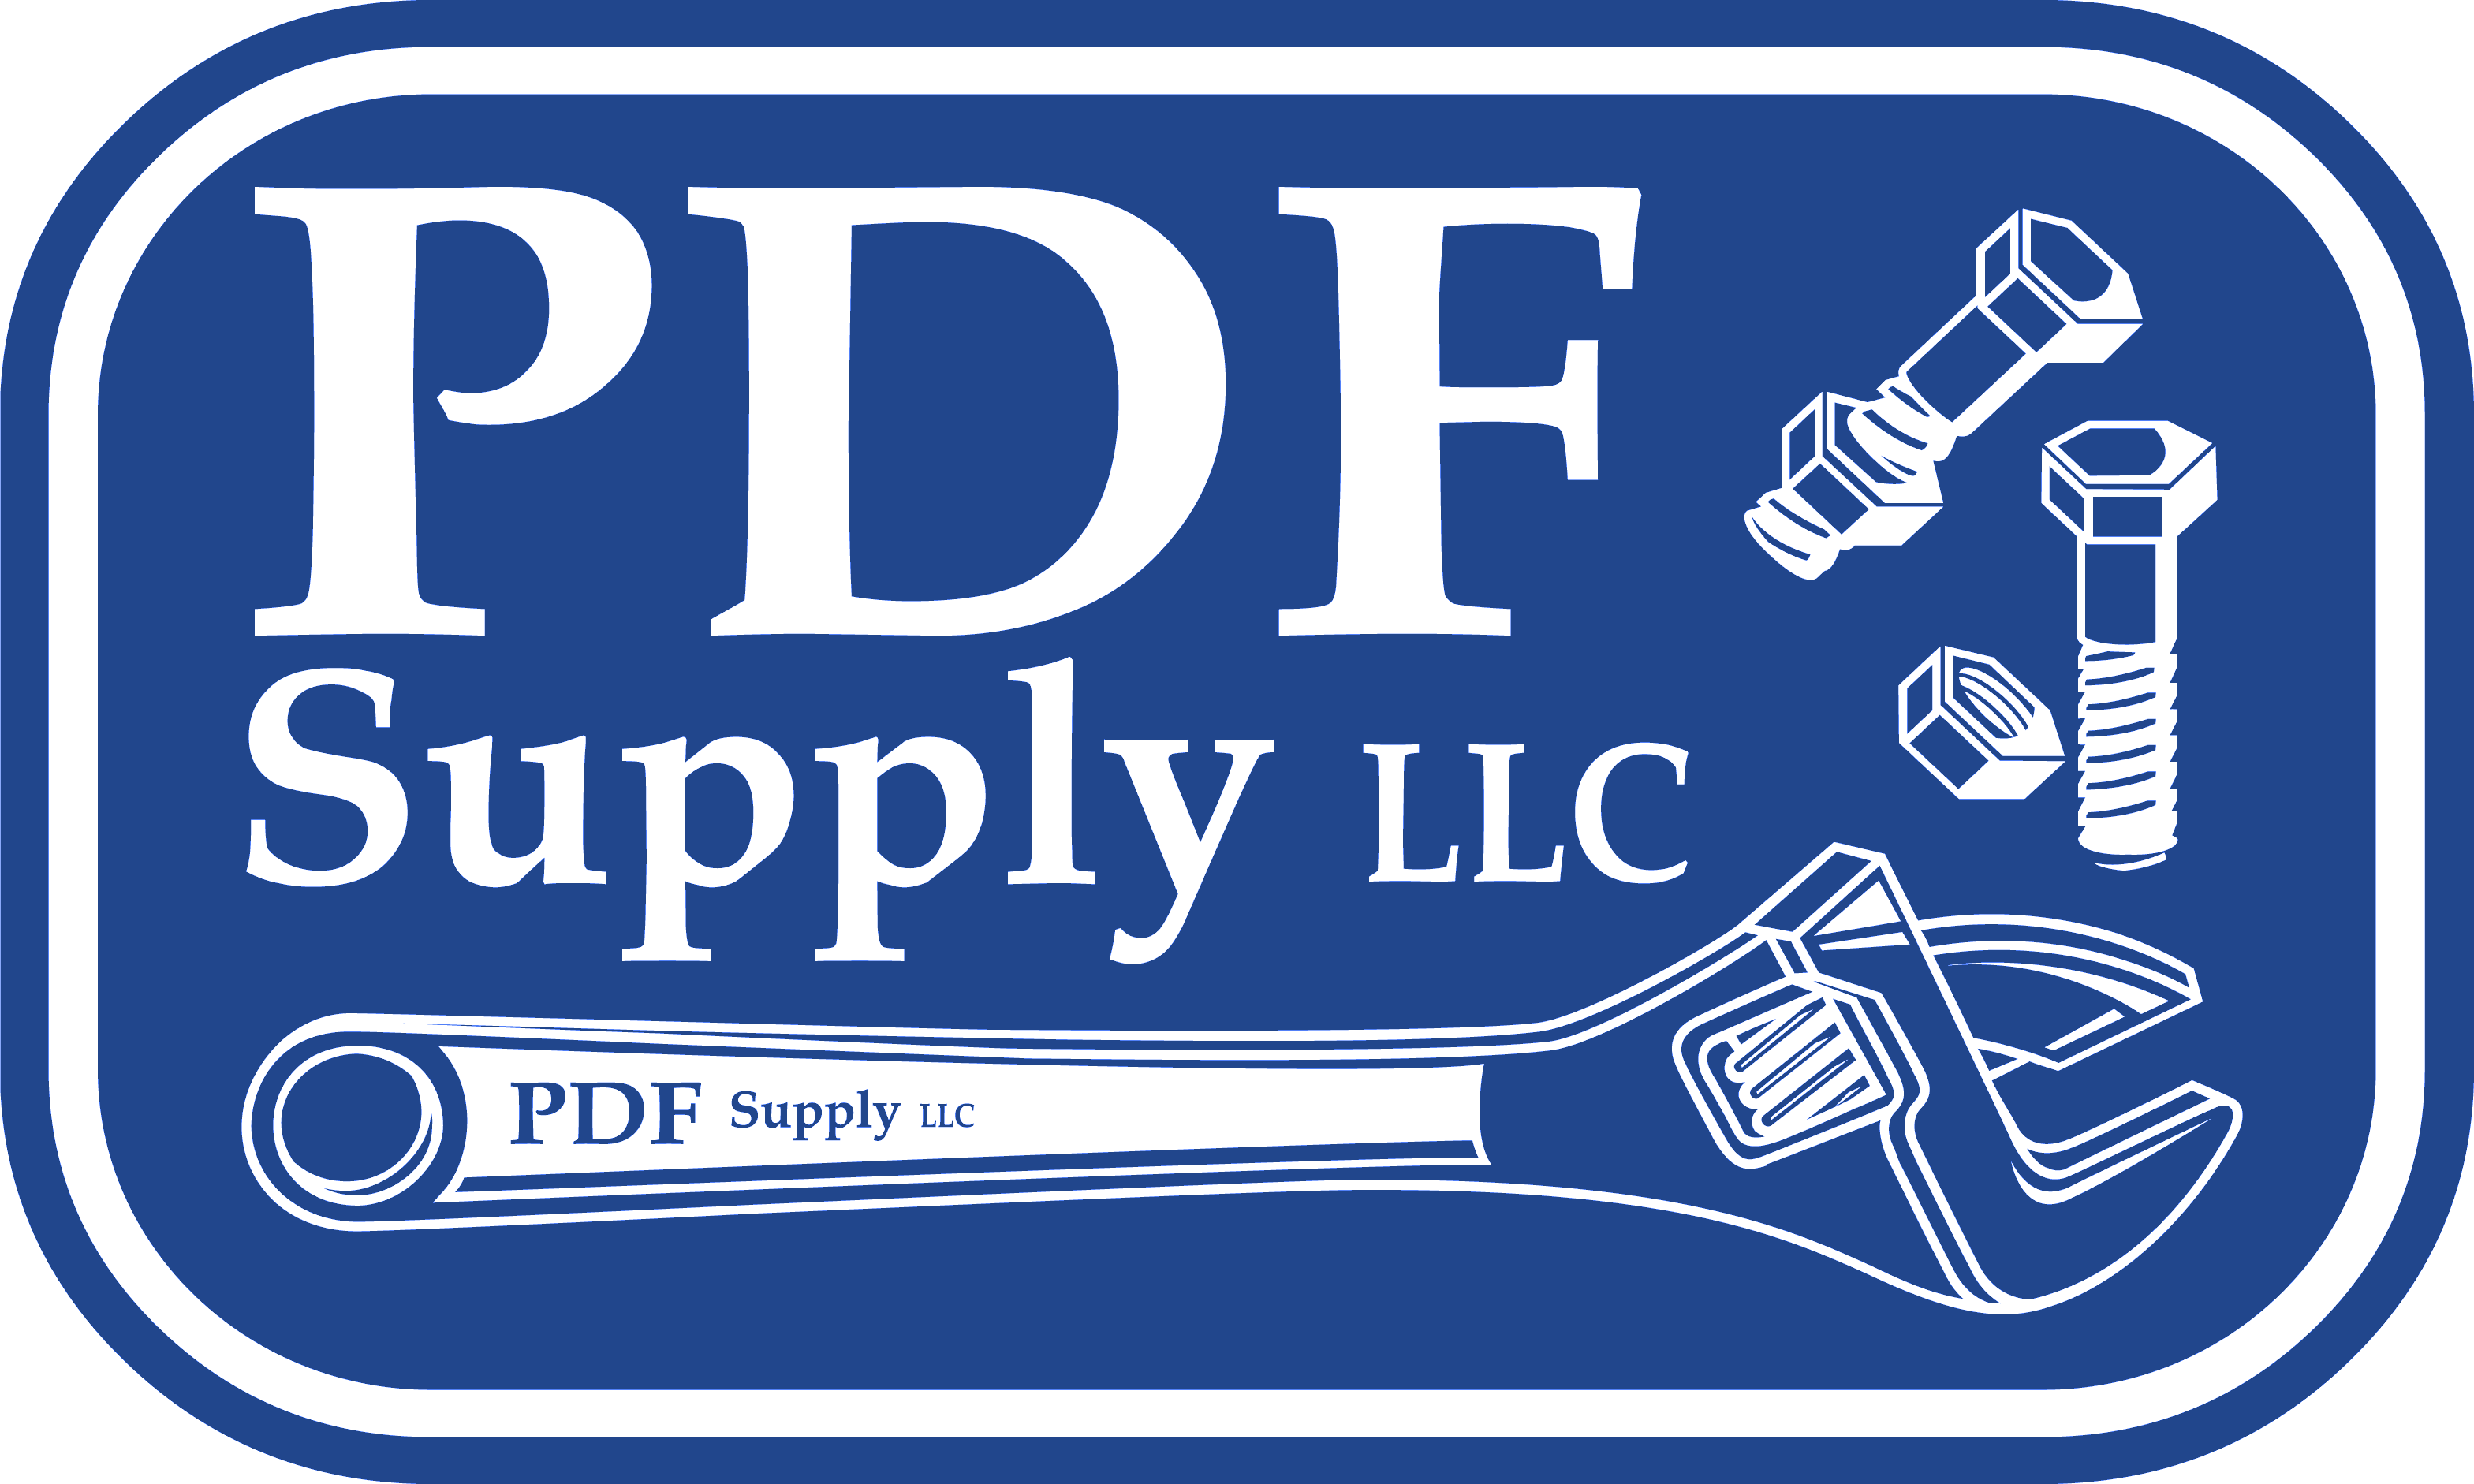 PDF Supply LLC